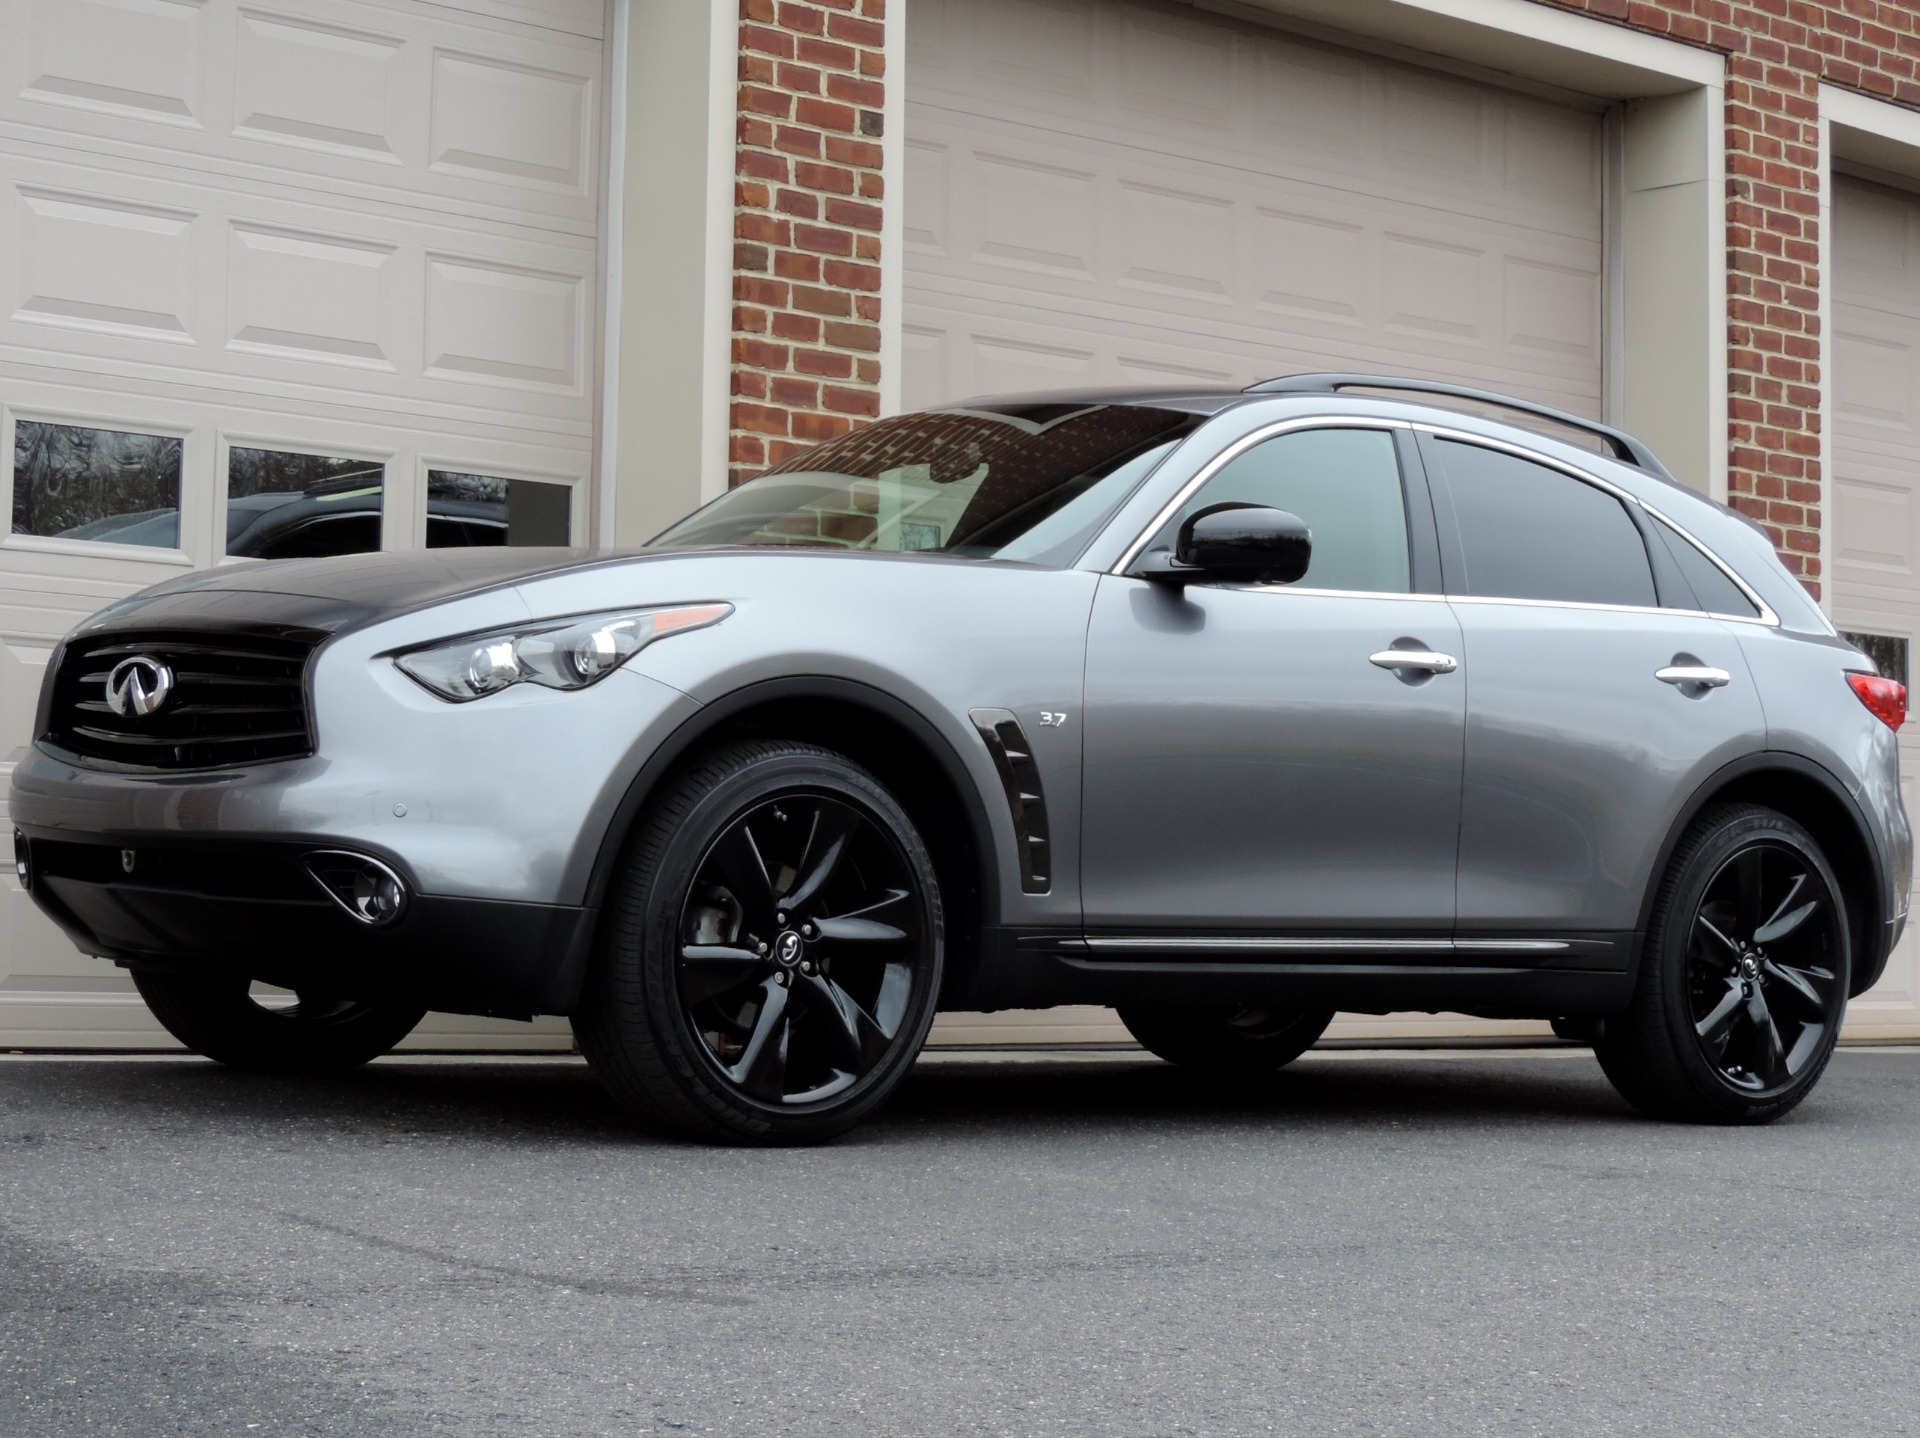 2015 infiniti qx70 s 3 7 sport stock 482391 for sale near edgewater park nj nj infiniti dealer. Black Bedroom Furniture Sets. Home Design Ideas